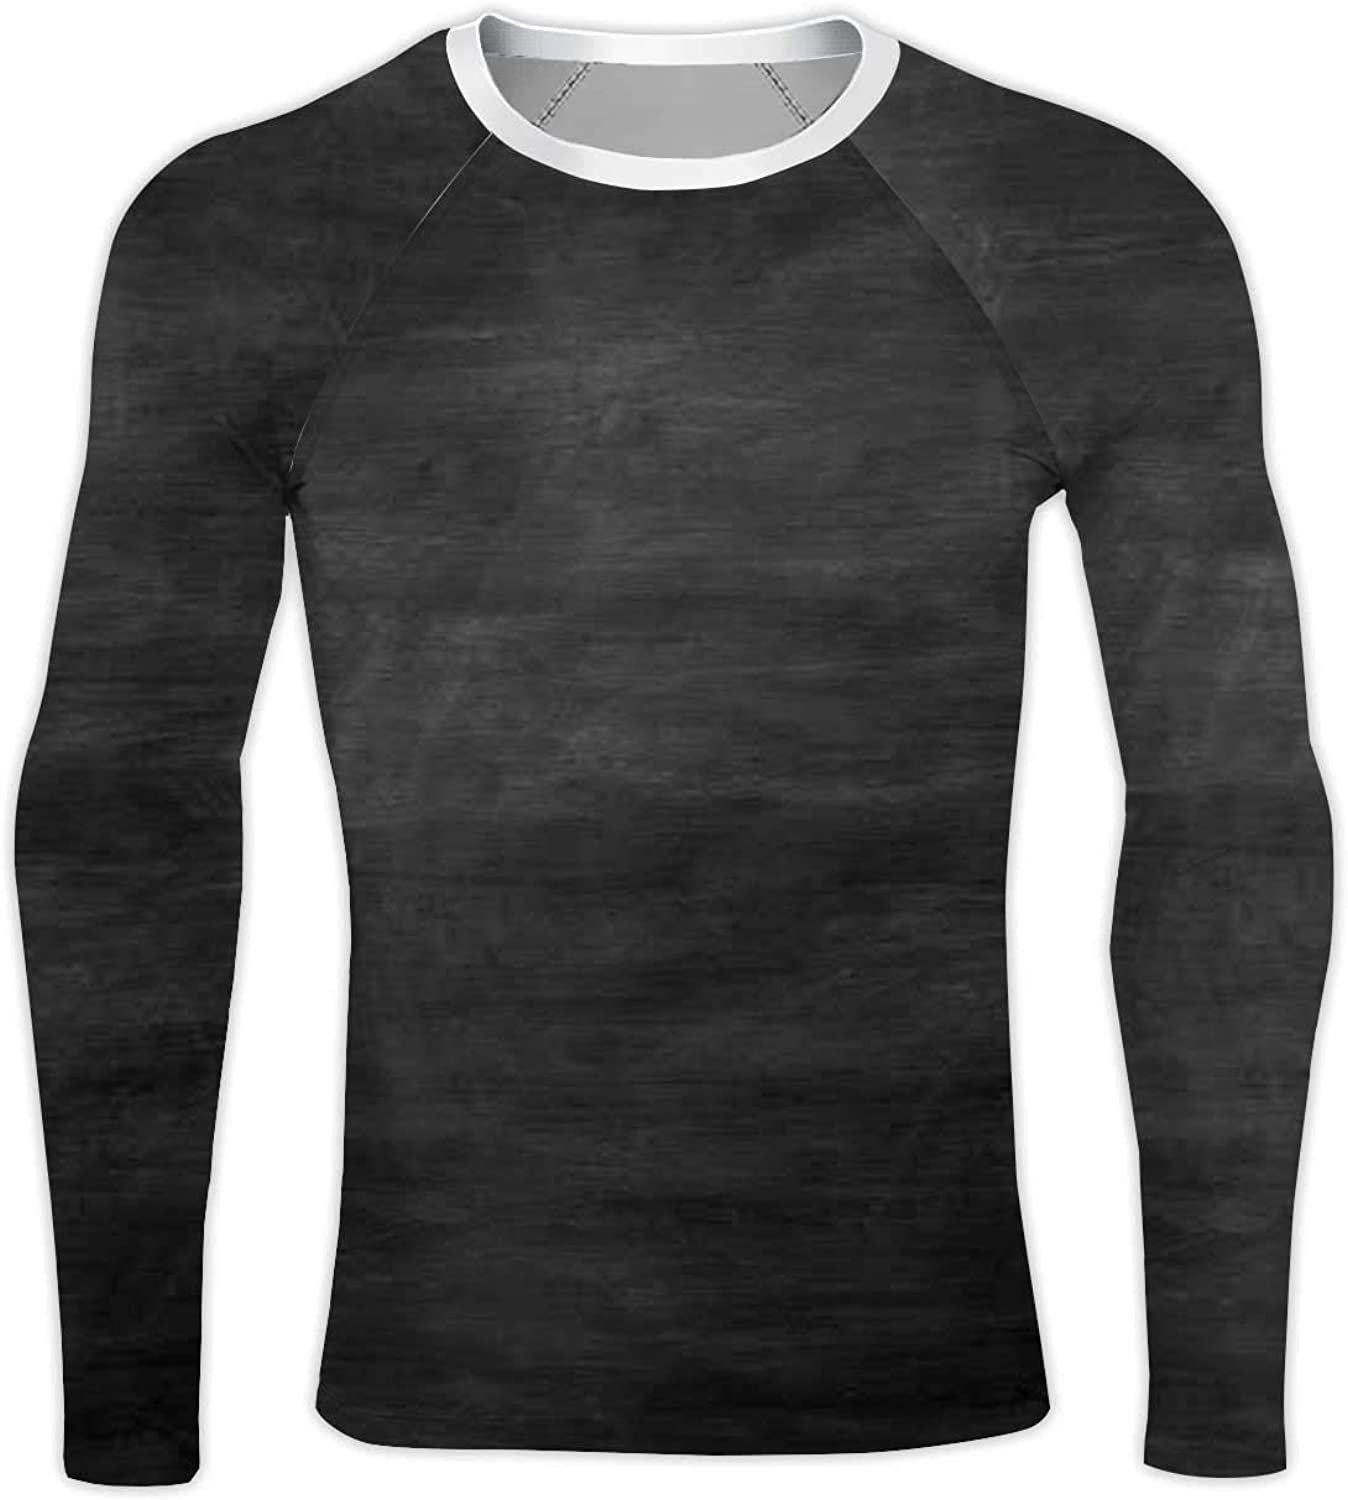 Compass and Pipe on The Old Paper Background,Compression Baselayer Tops Long Sleeve T-Shirts S